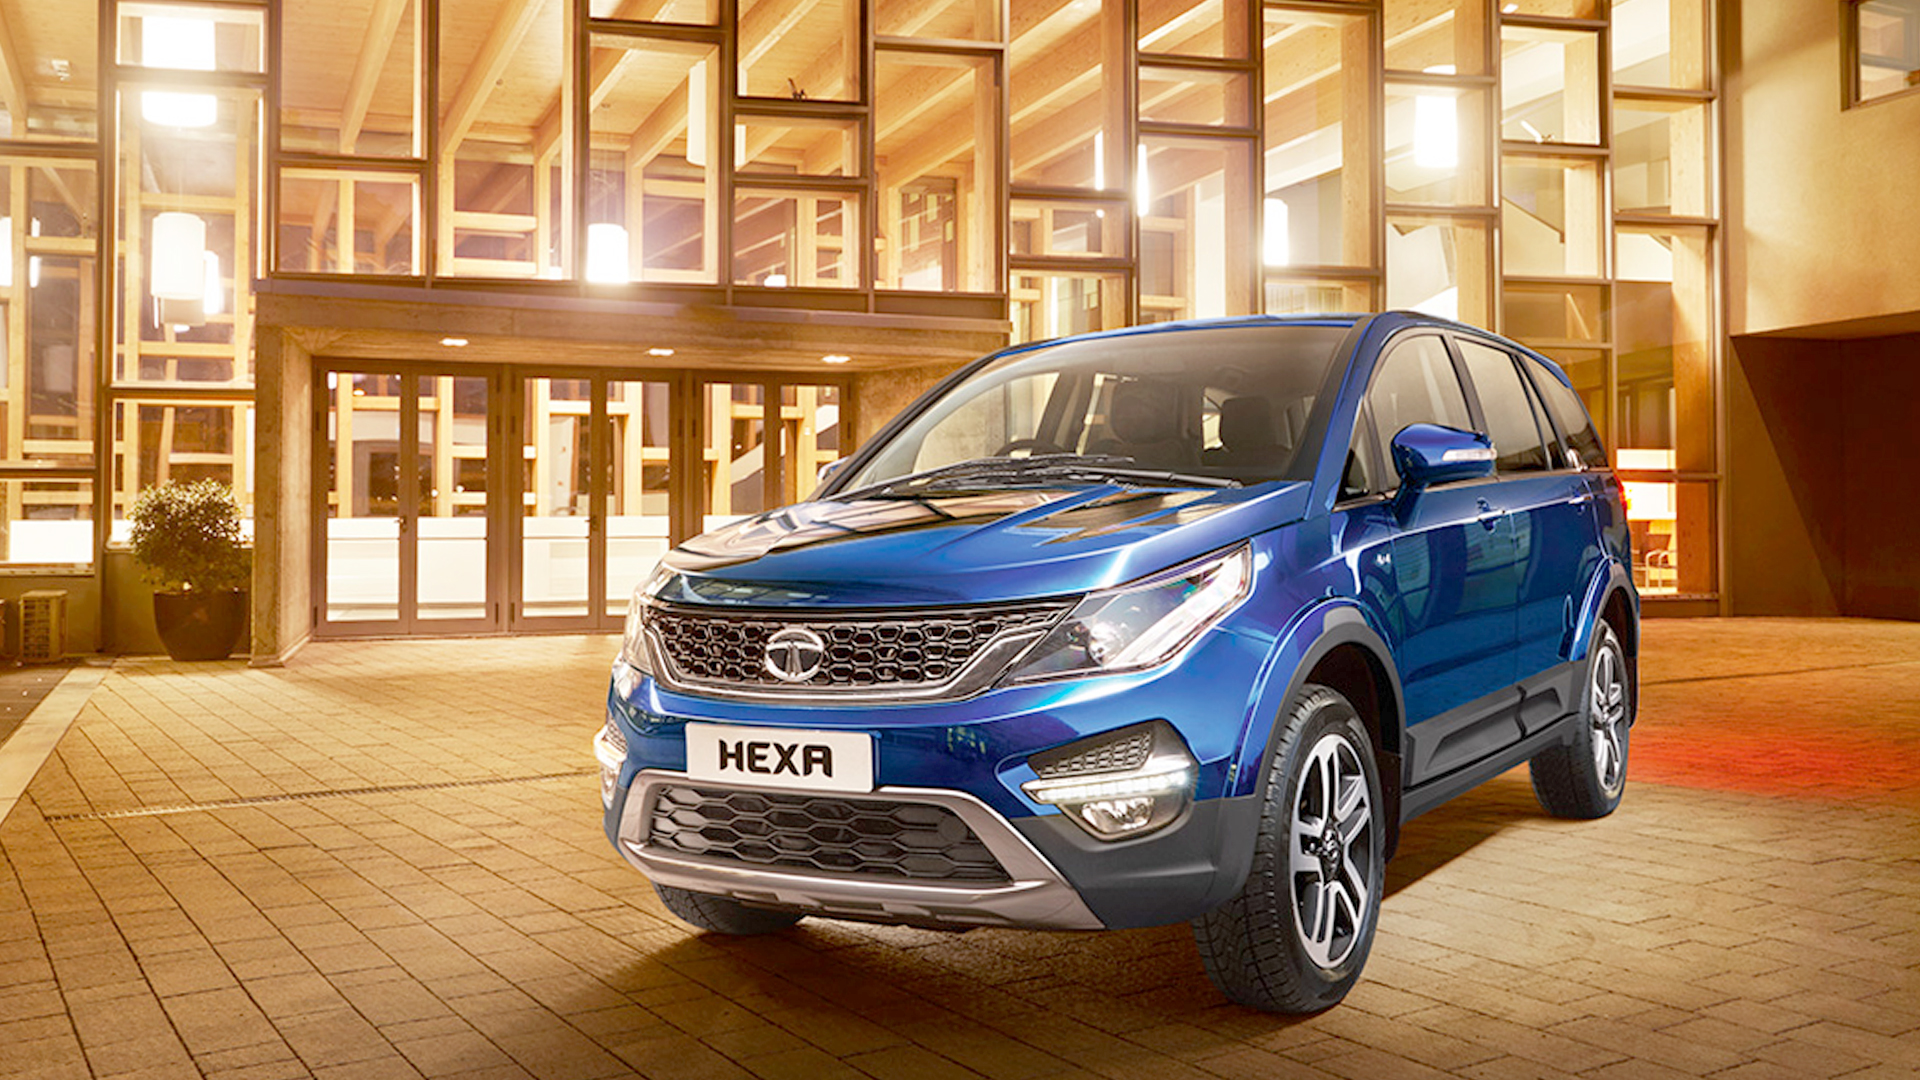 The Trending Stuff About The All New Tata Hexa 2019 Edition